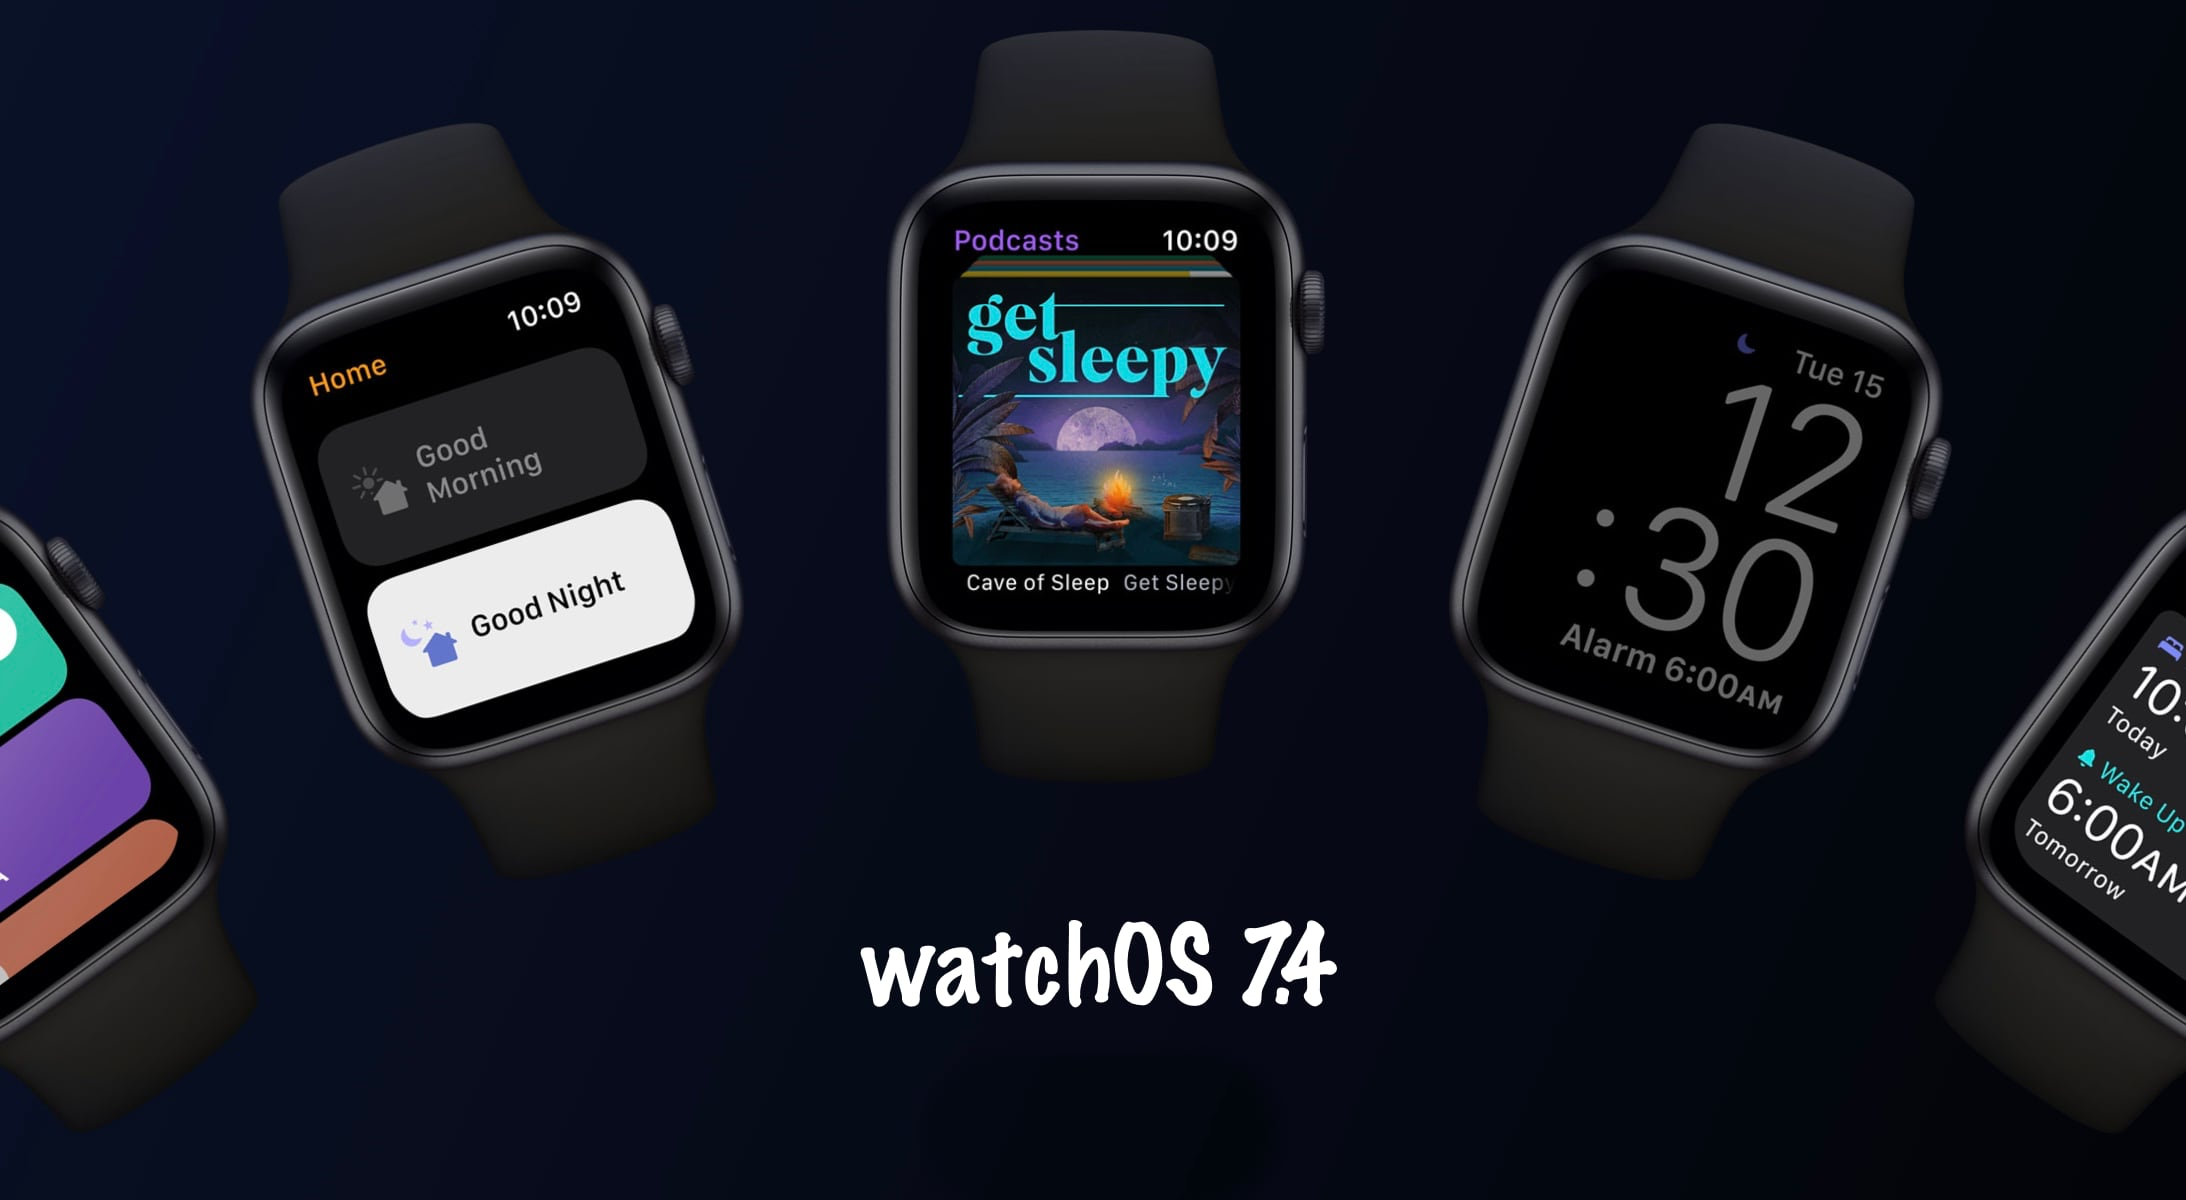 watchOS 7.4 beta 2